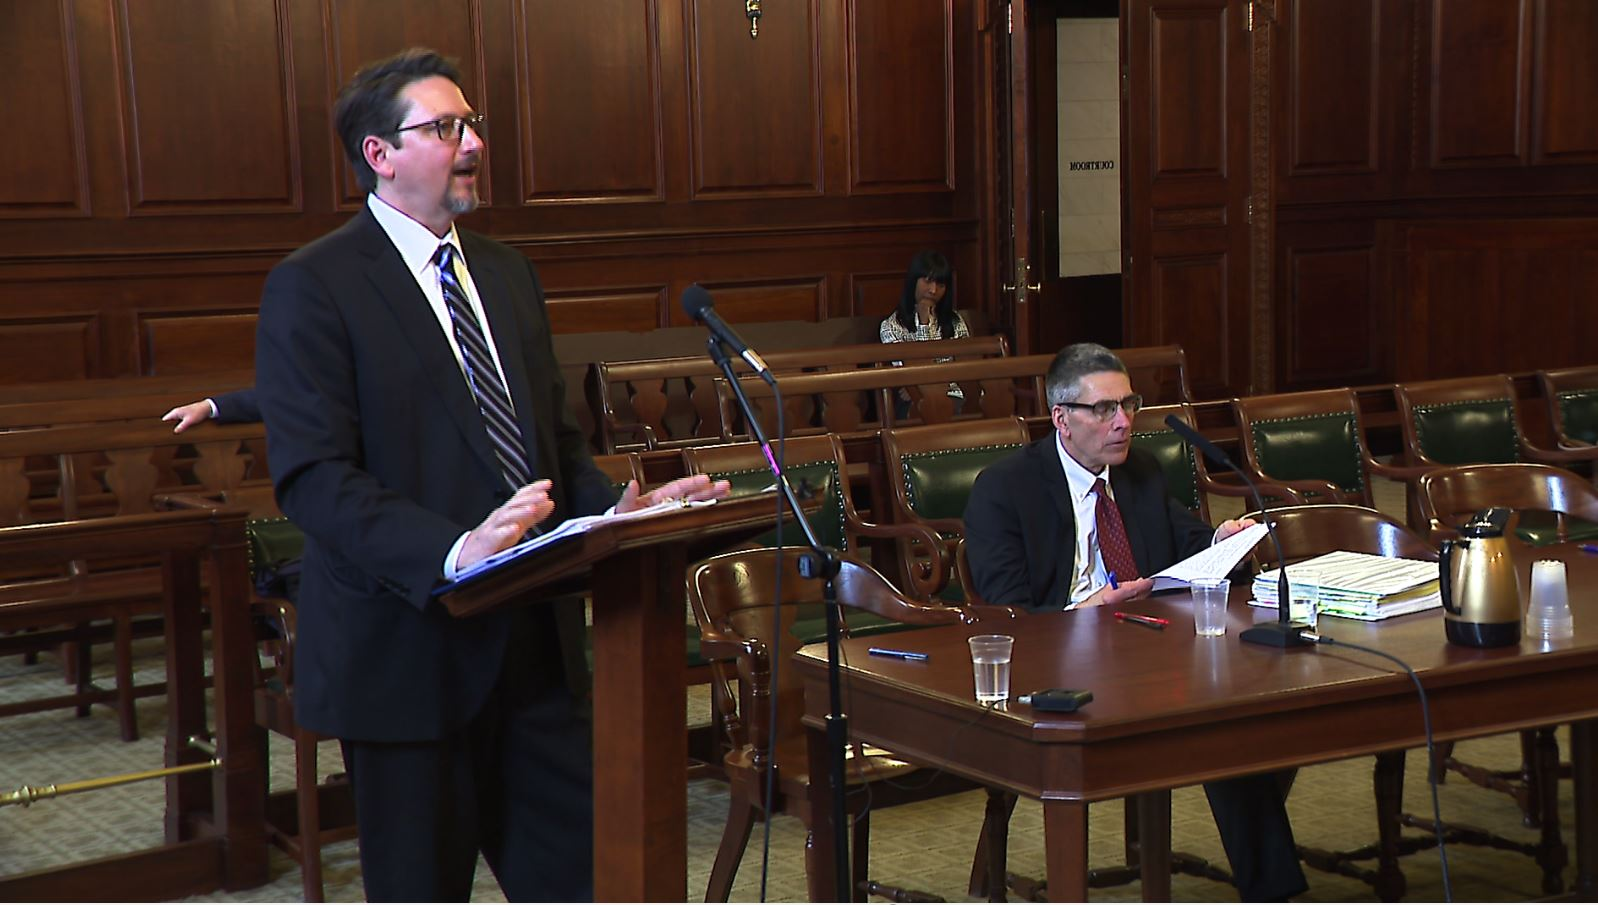 Jason Gramitt (left) of the R.I. Ethics Commission and Marc DeSisto, representing Supreme Court Justice Francis Flaherty, make arguments in an administrative appeal case in Superior Court.